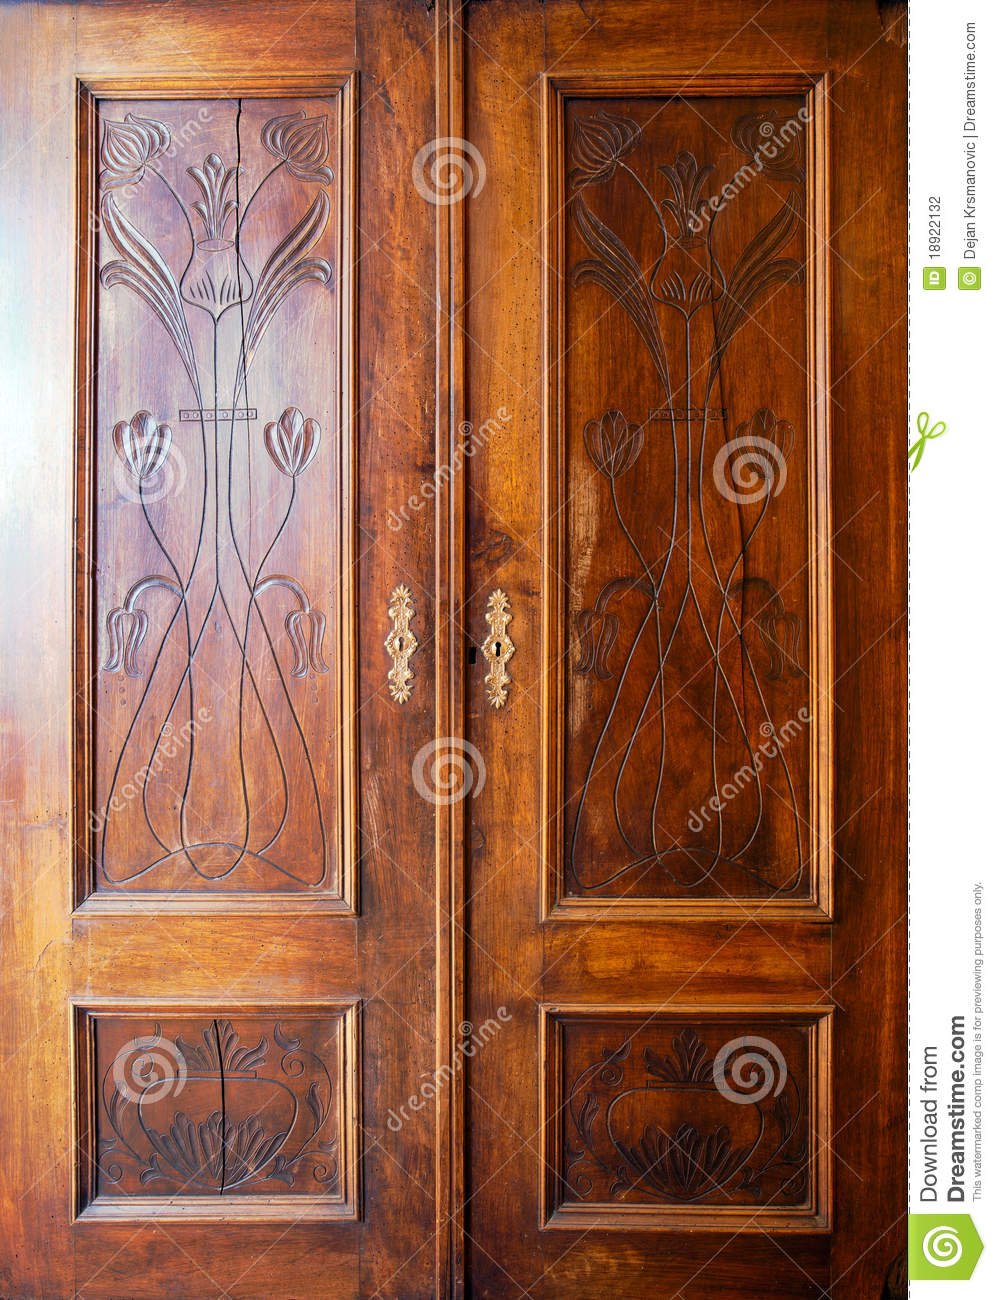 Wooden closet doors stock photo image of cabinet